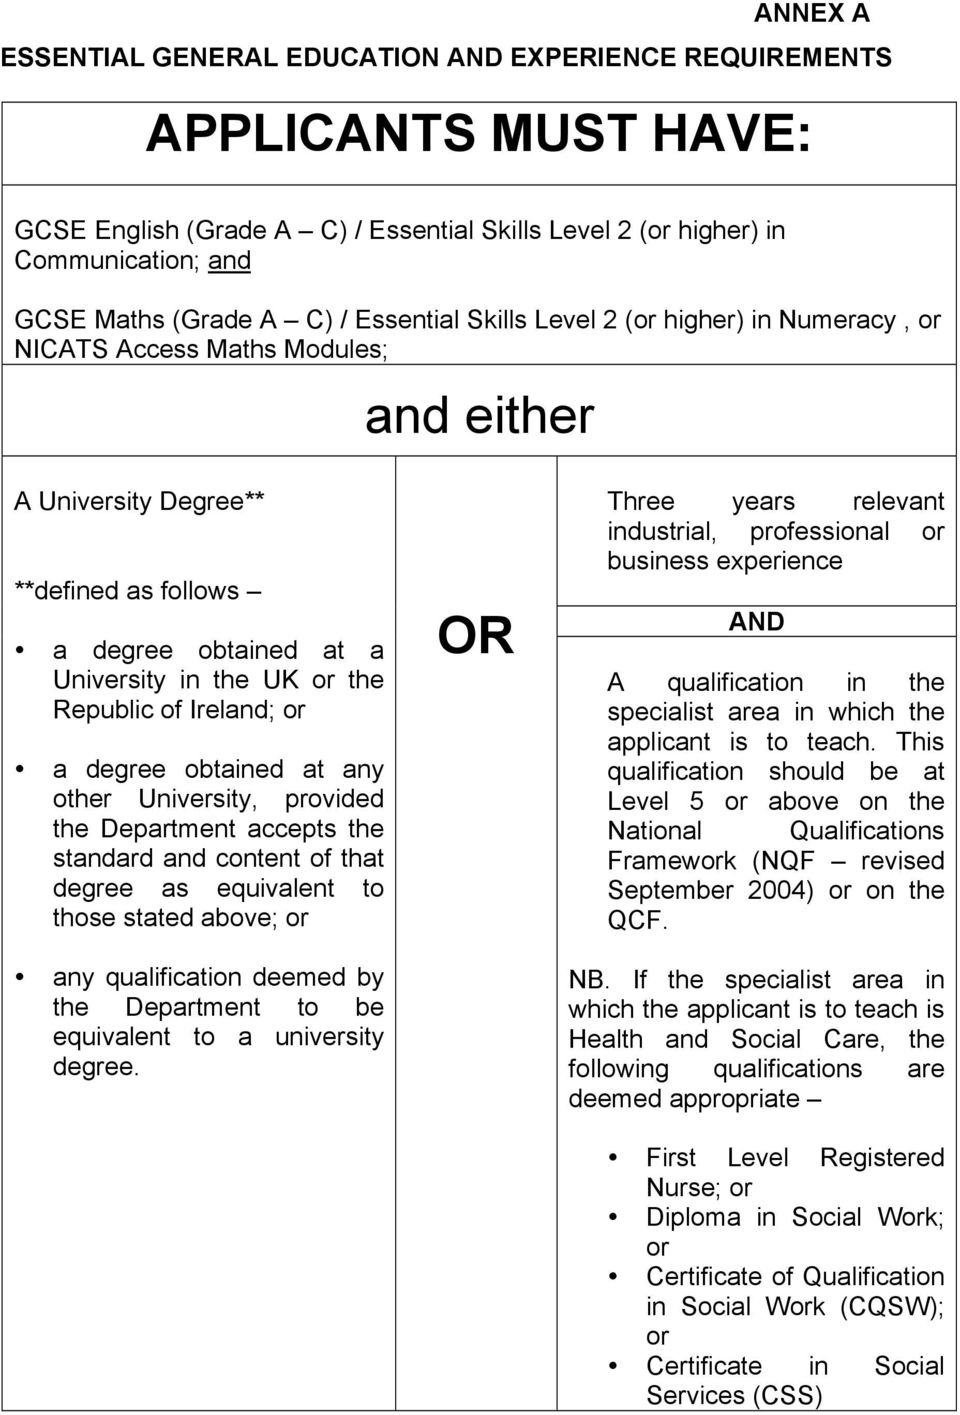 Ireland; or a degree obtained at any other University, provided the Department accepts the standard and content of that degree as equivalent to those stated above; or any qualification deemed by the